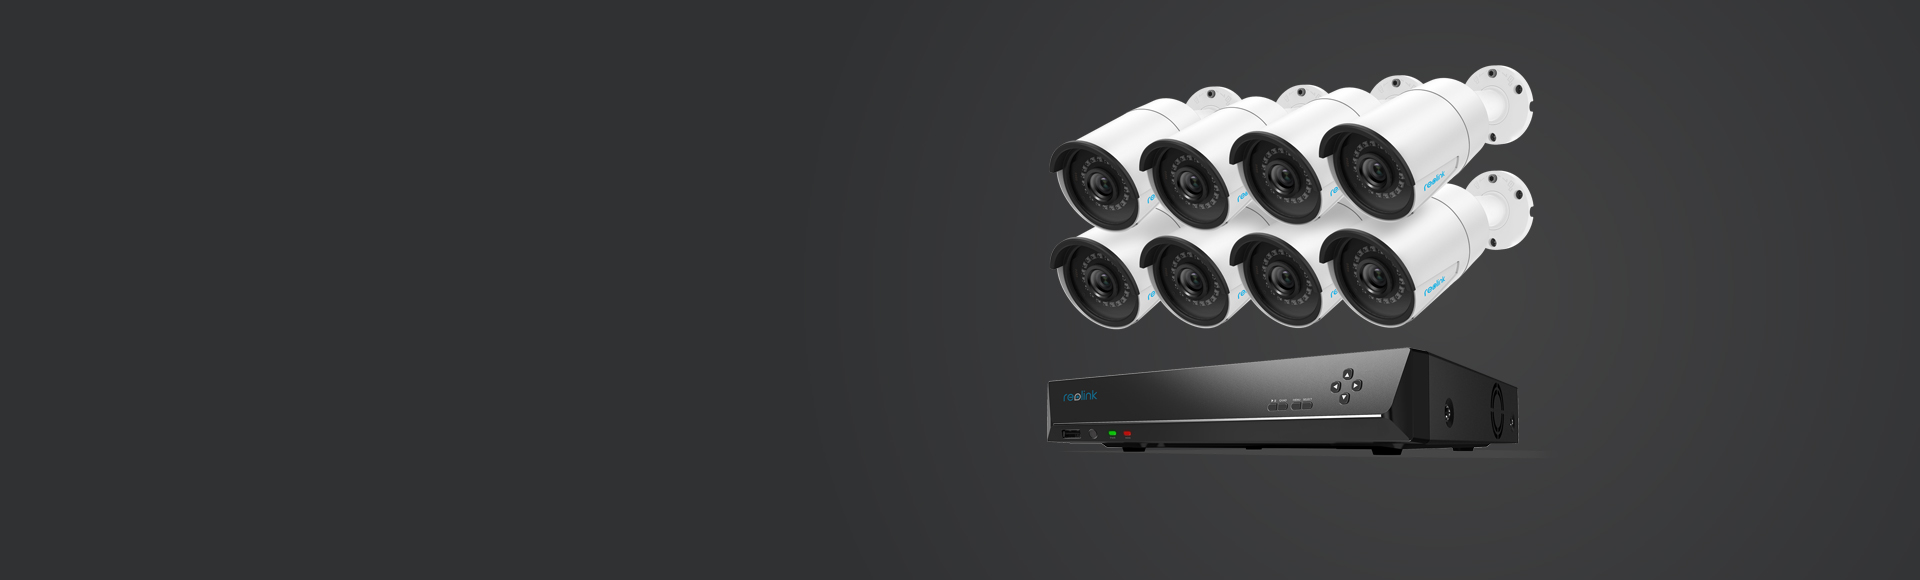 Reolink RLK16-410B8 - 16-Channel PoE Security Camera System